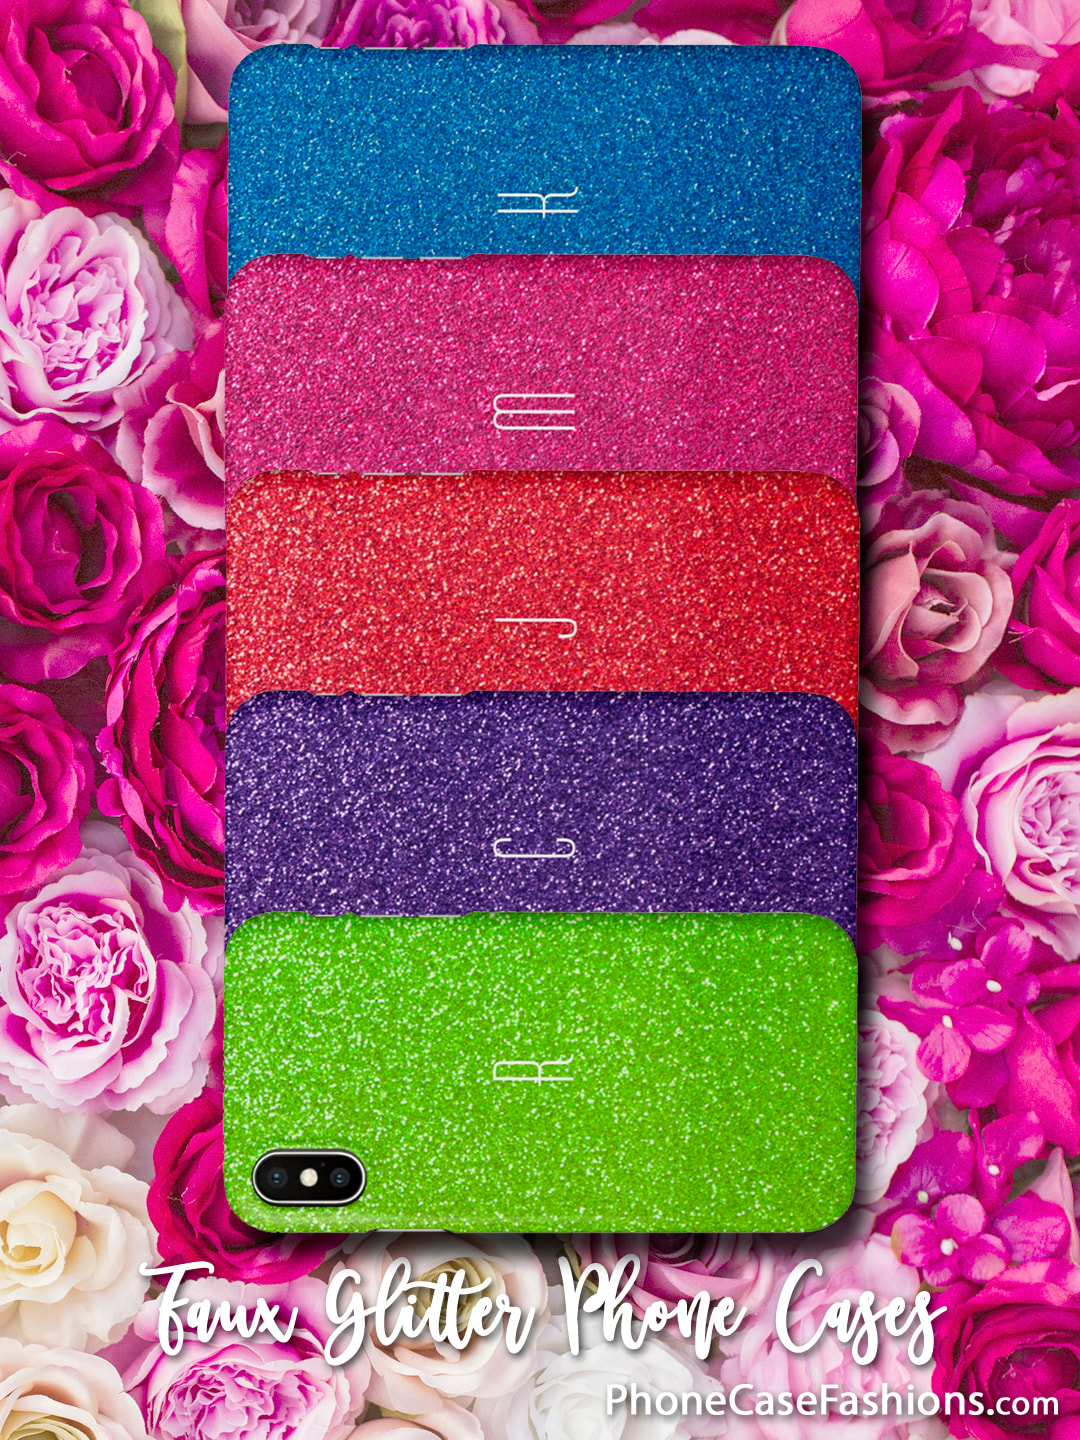 Love sparkle? Faux glitter phone cases in lots of colors, personalize with your initial, monogram, name or leave plain. Collect them all to match your favorite clothes, fingernail polish or your mood. Shop PhoneCaseFashions.com